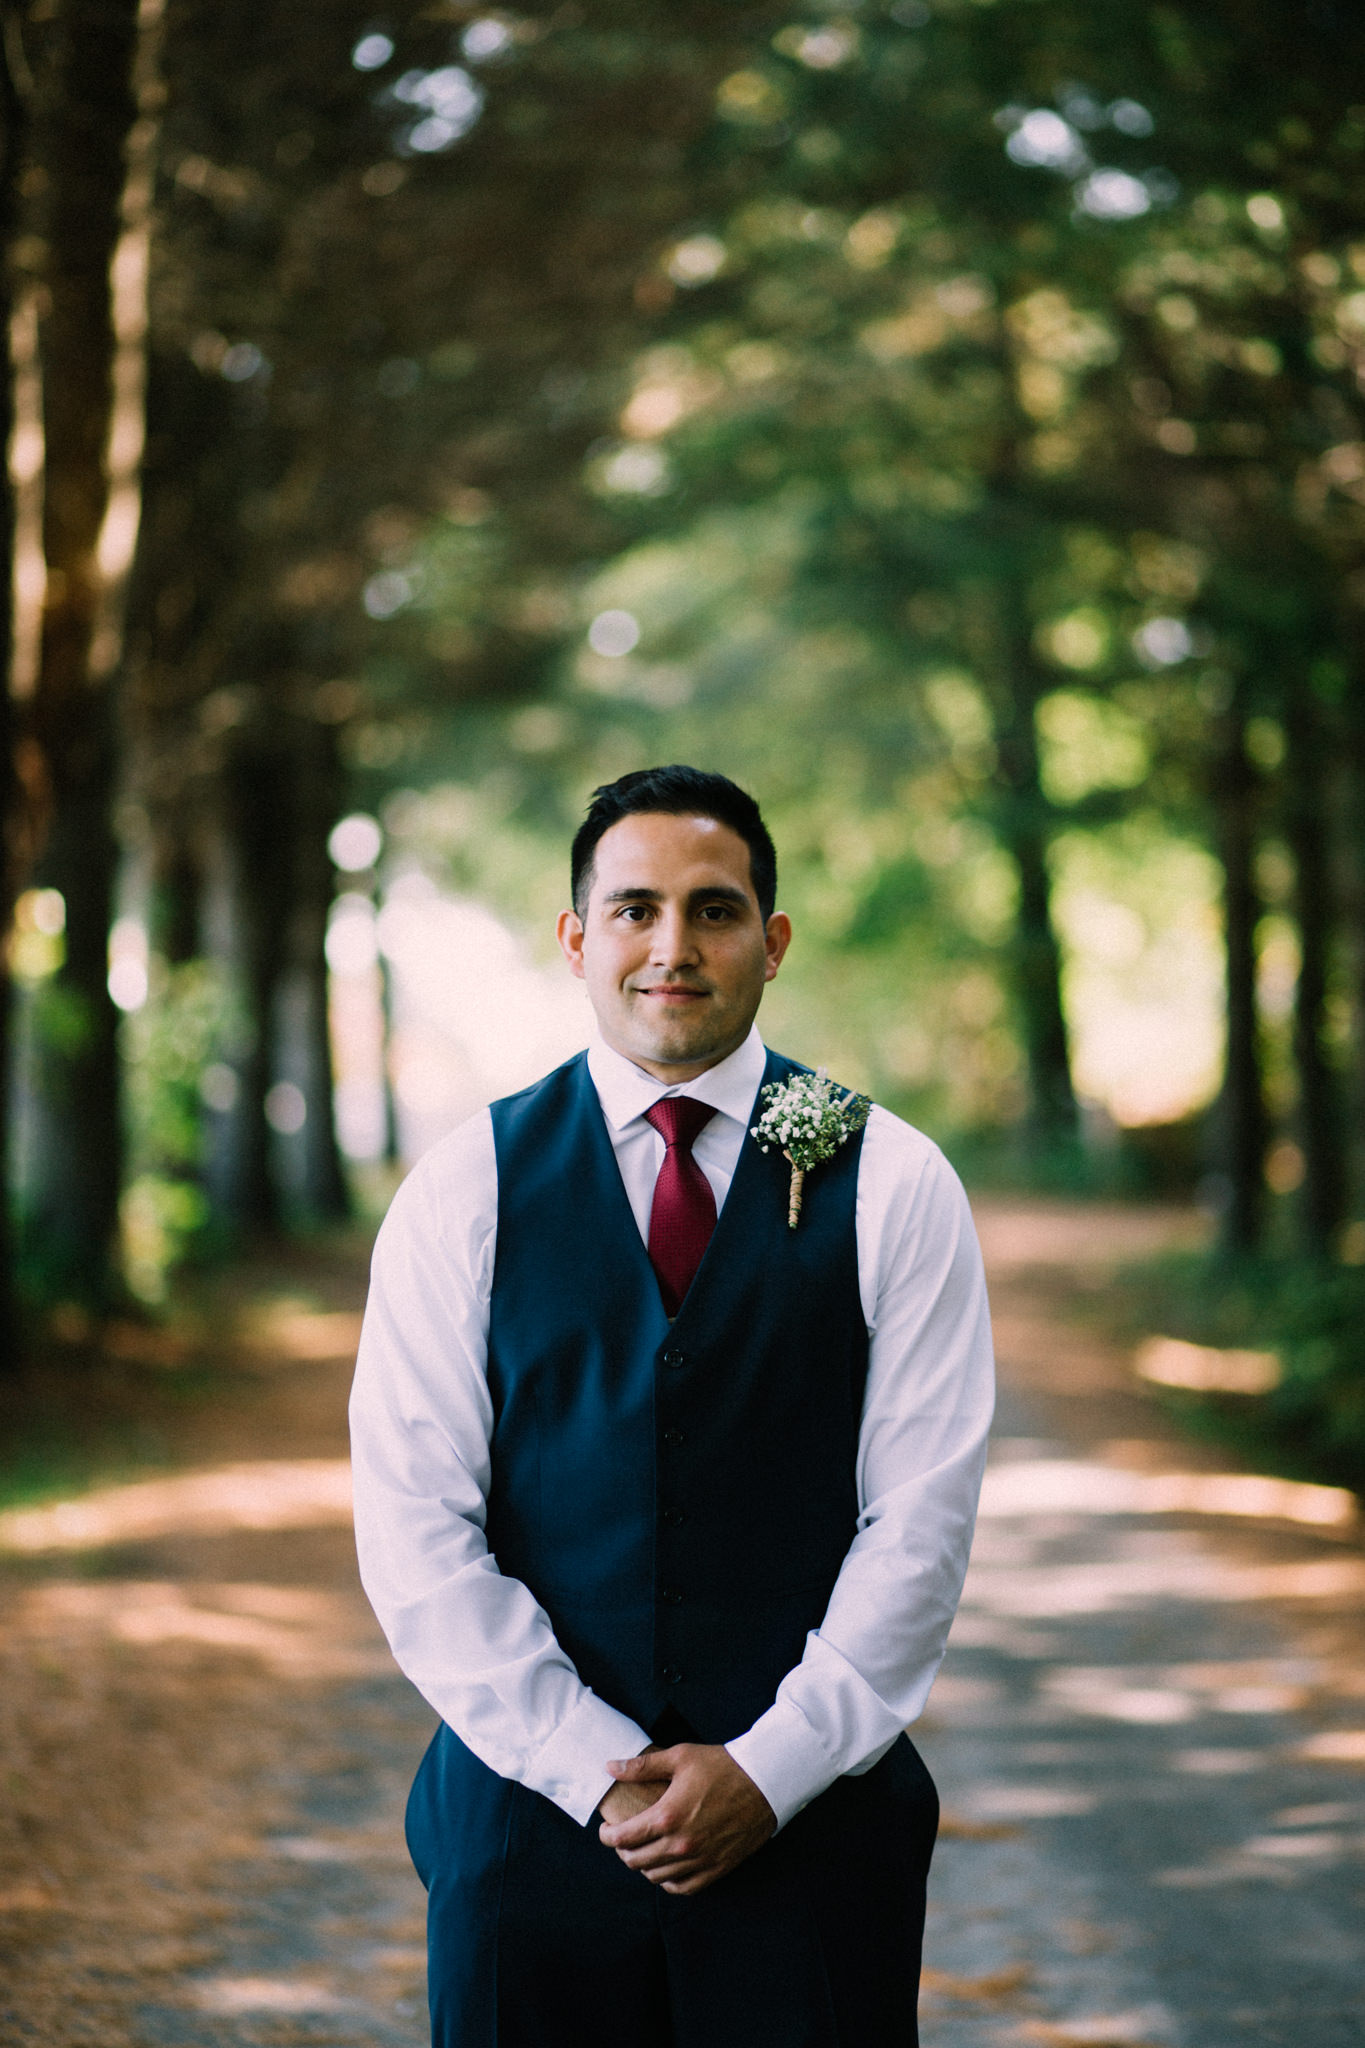 groom standing on a path in a forest